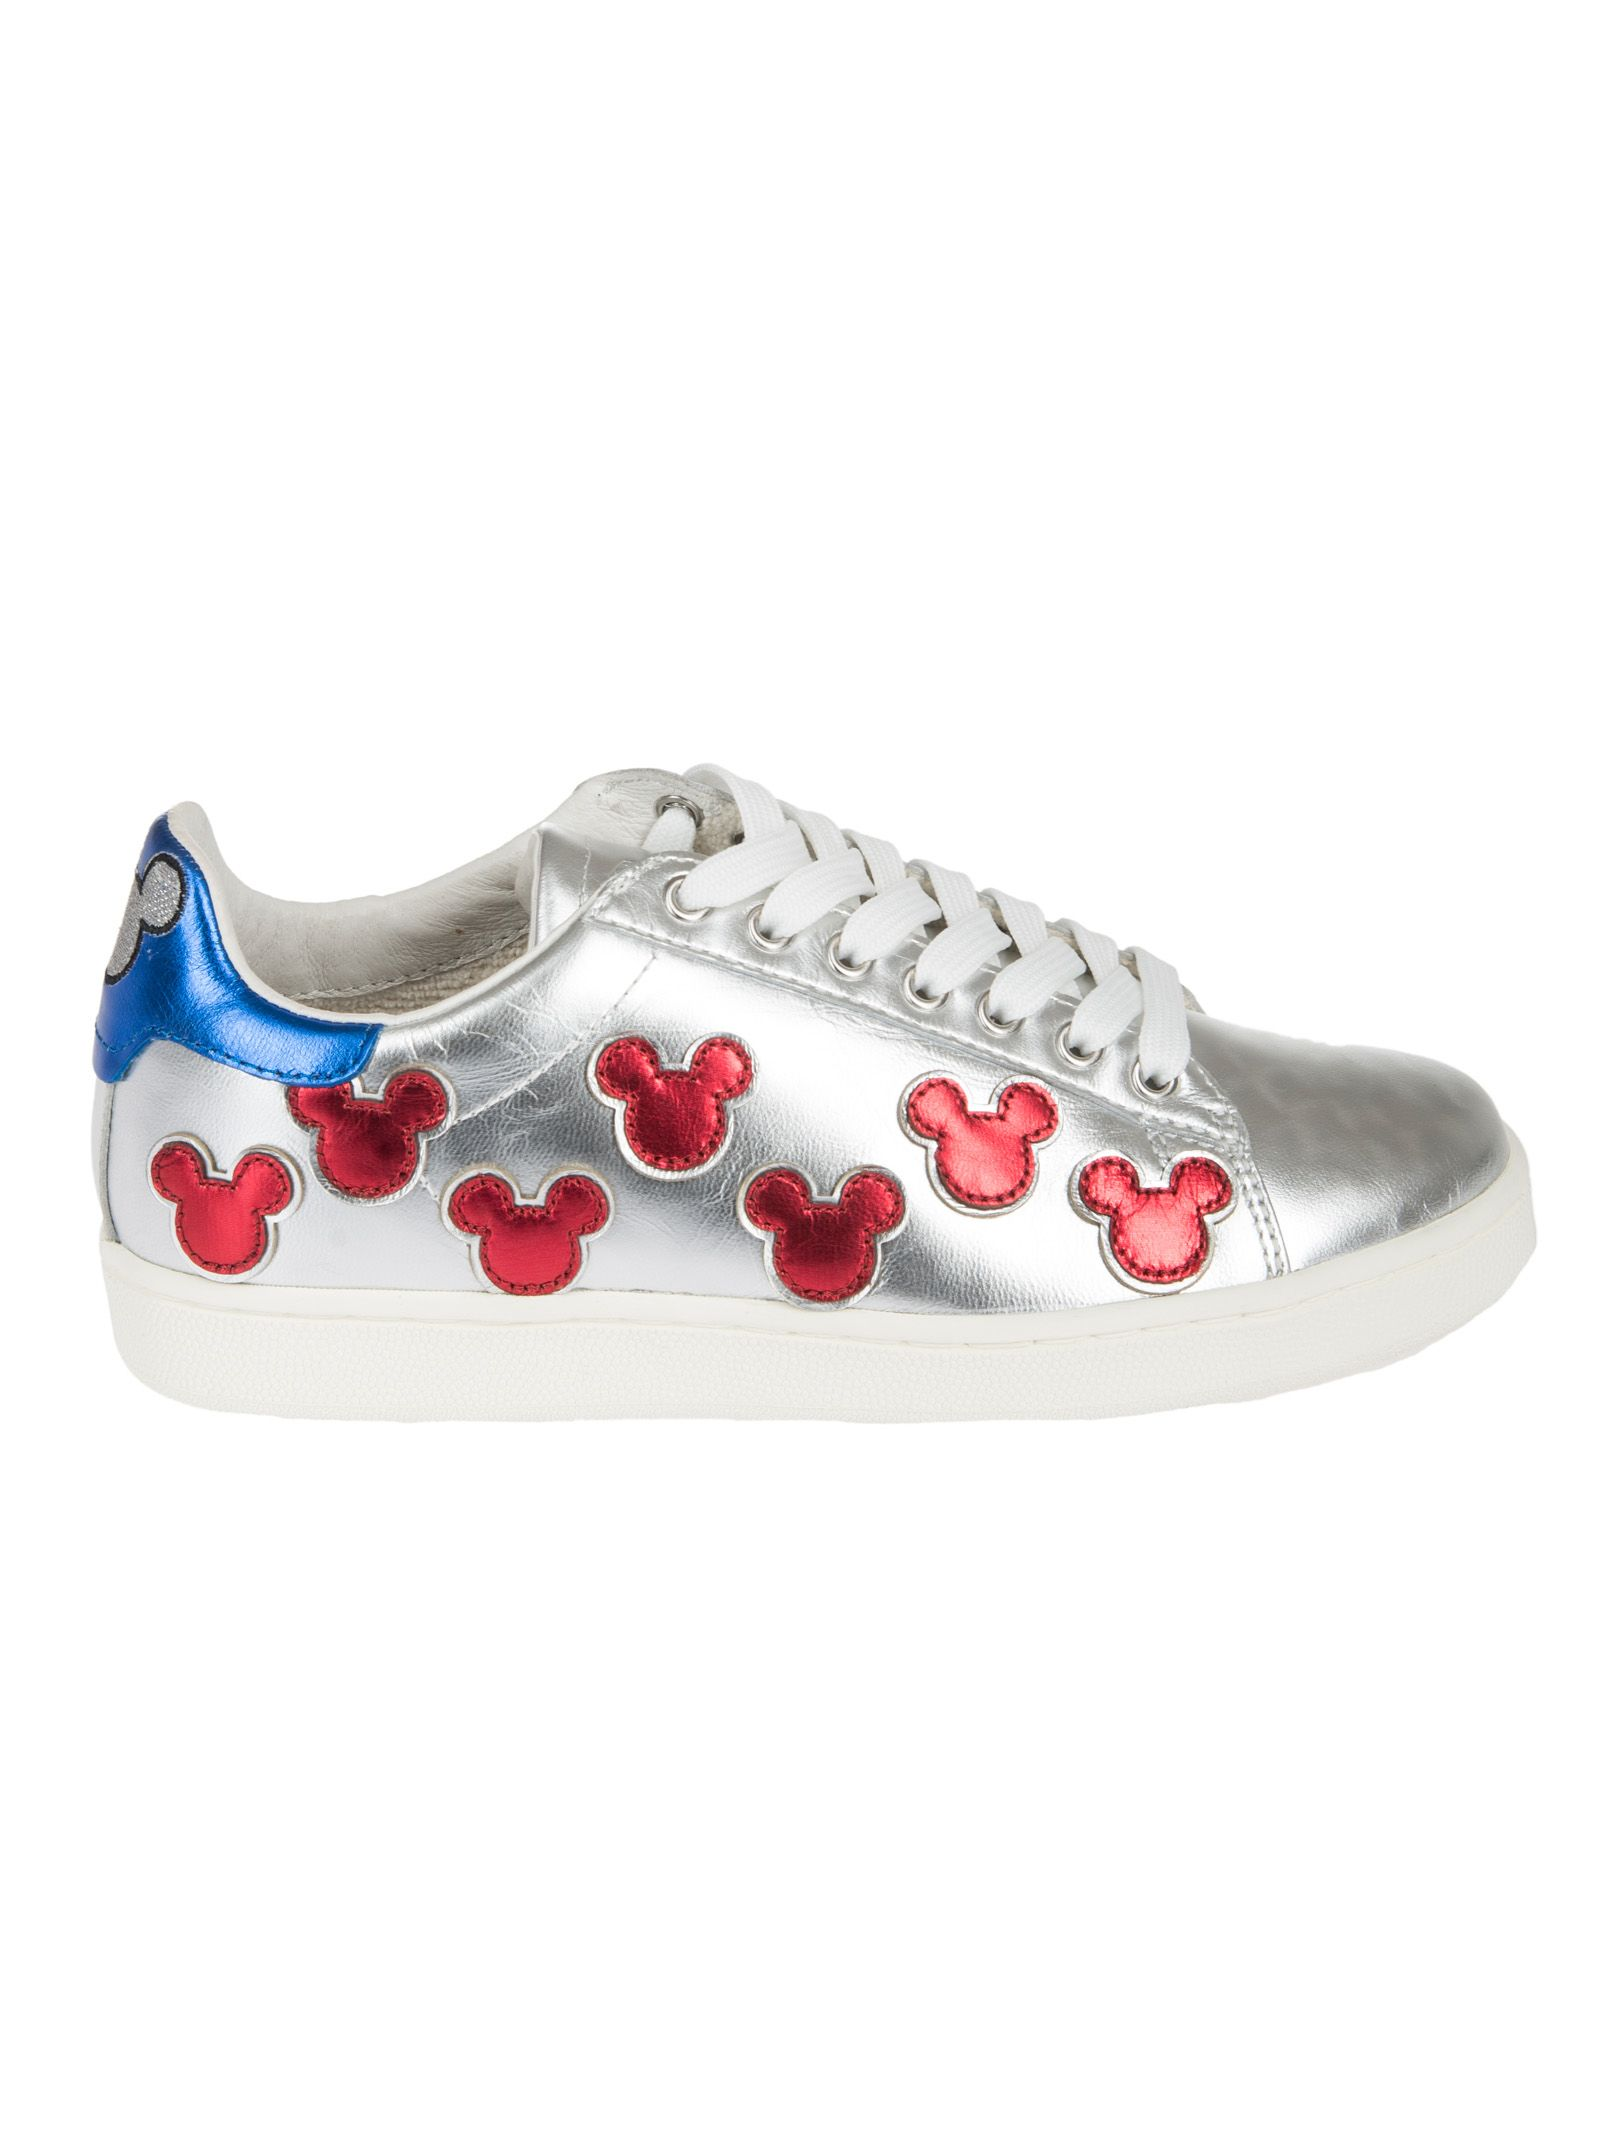 MOA USA Moa Master Of Arts Micky Mouse Sneakers in Silver